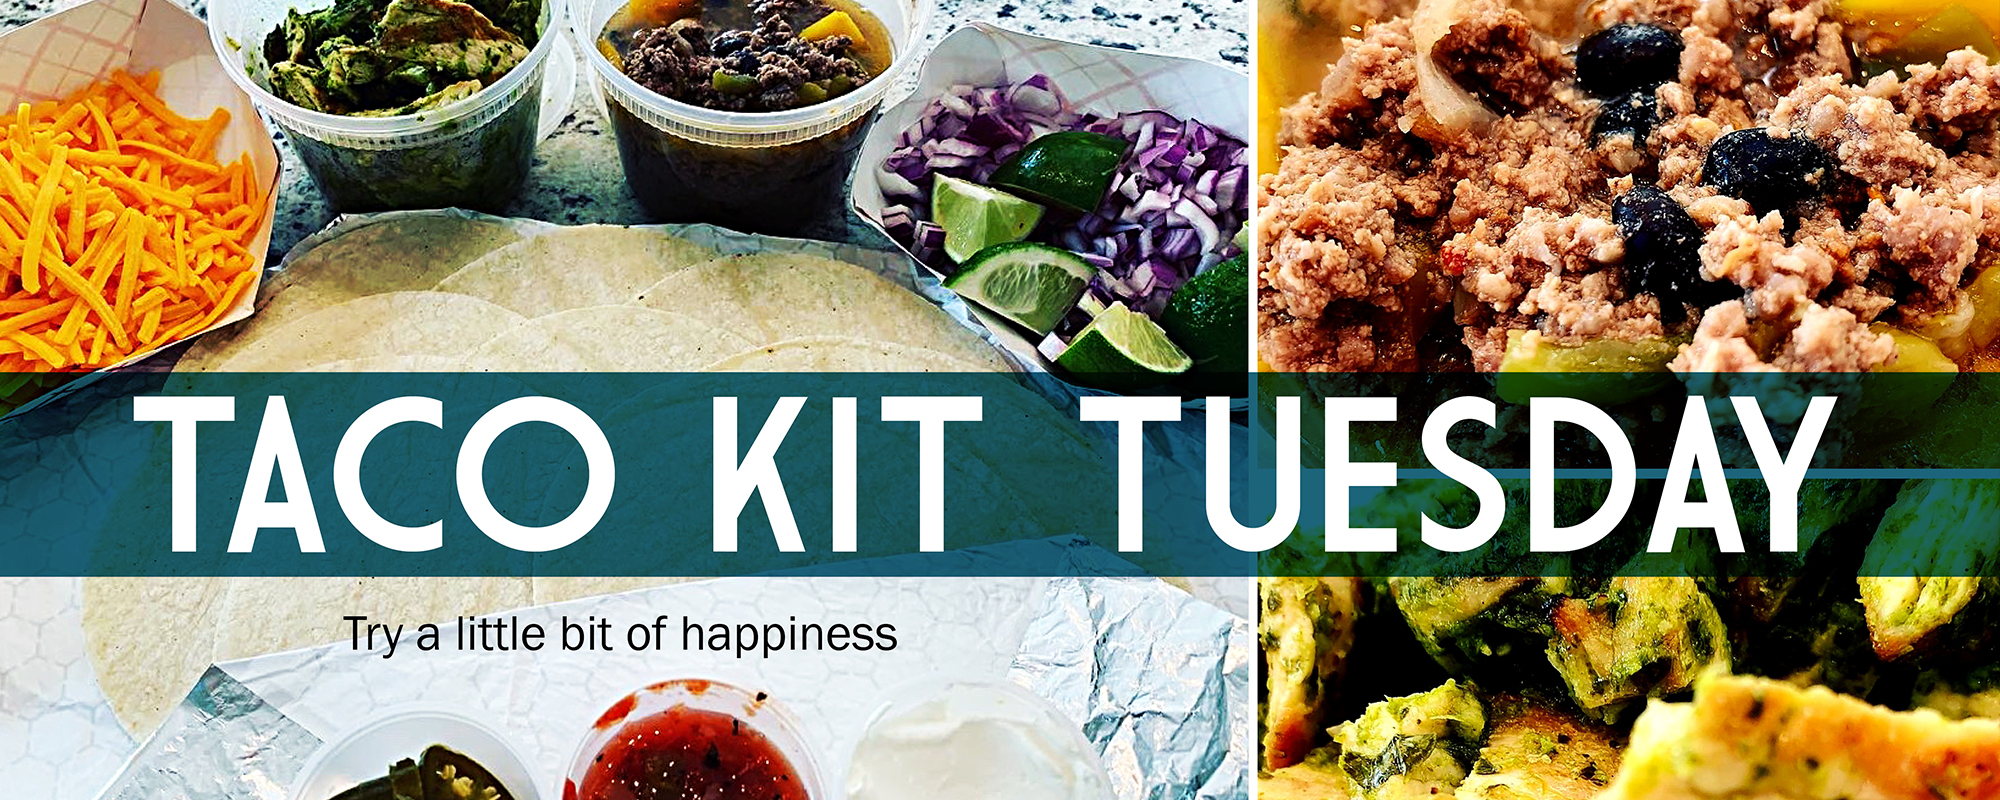 Taco Kits family packages for Taco Tuesday from Hailey's Harp and Pub in Metuchen